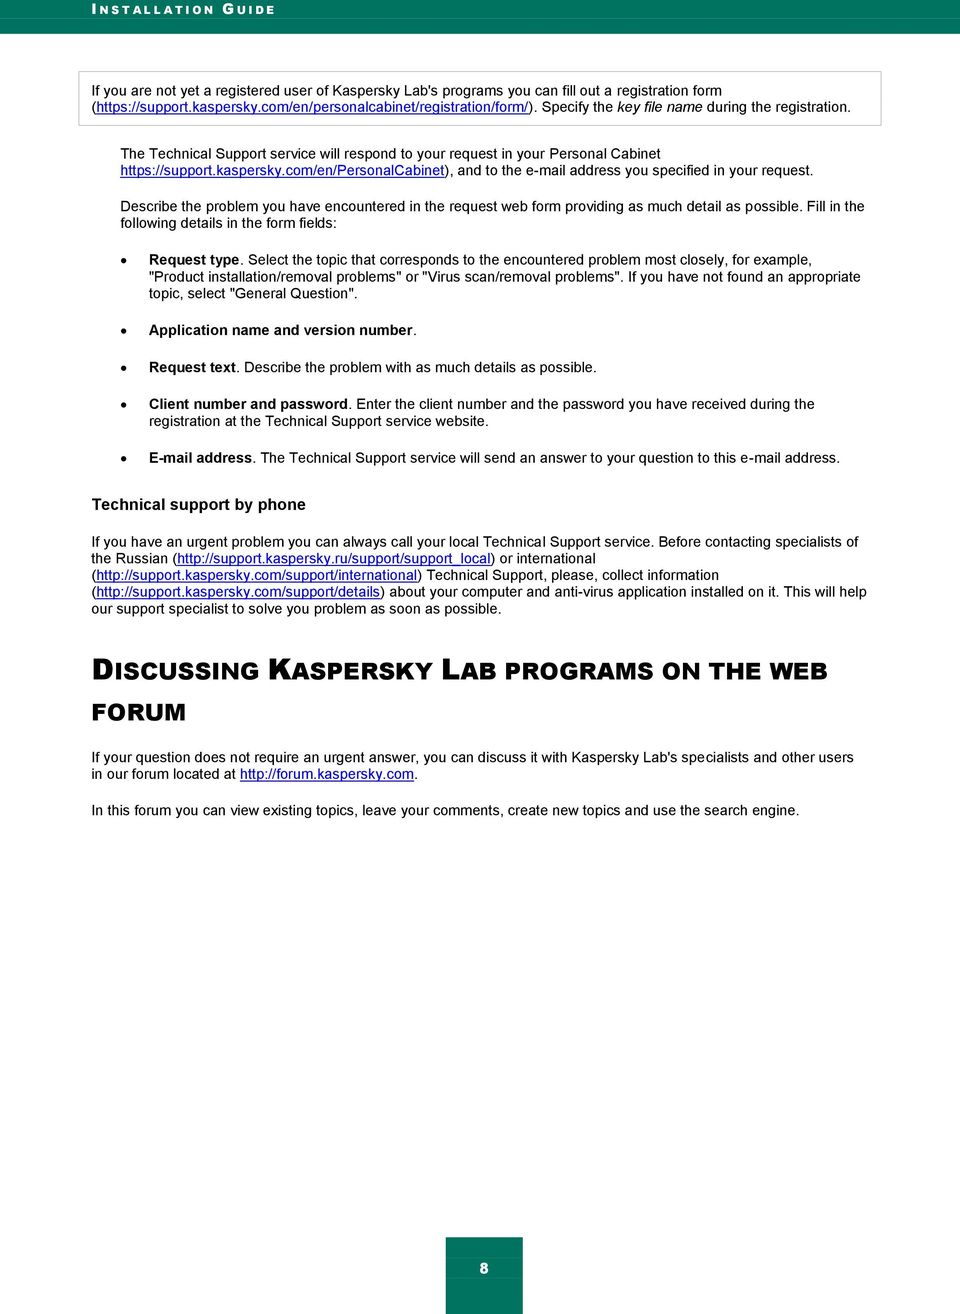 kaspersky.com/en/personalcabinet), and to the e-mail address you specified in your request. Describe the problem you have encountered in the request web form providing as much detail as possible.